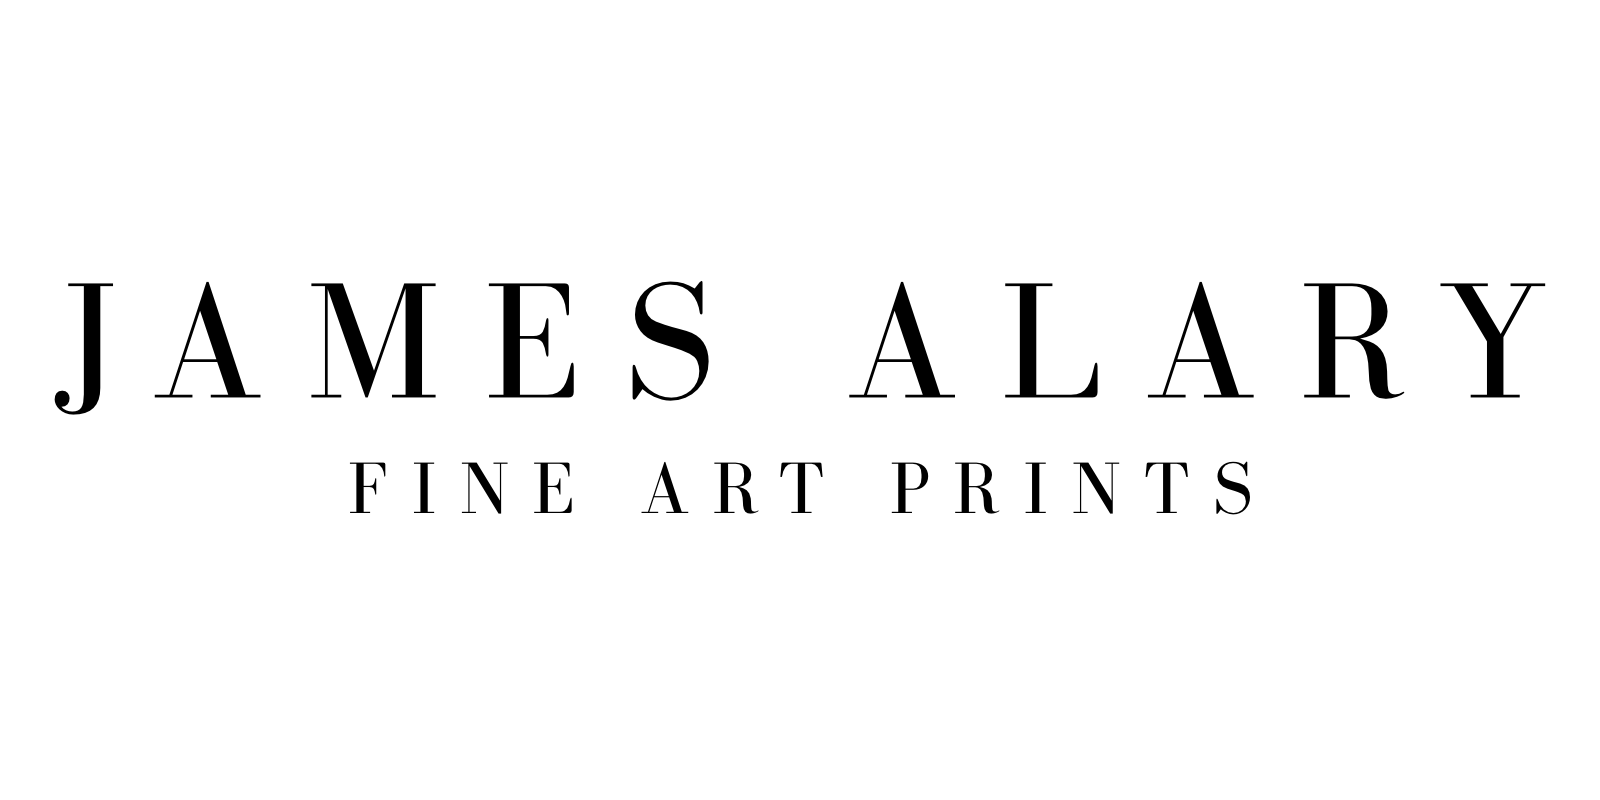 JAMES ALARY FINE ART PRINTS